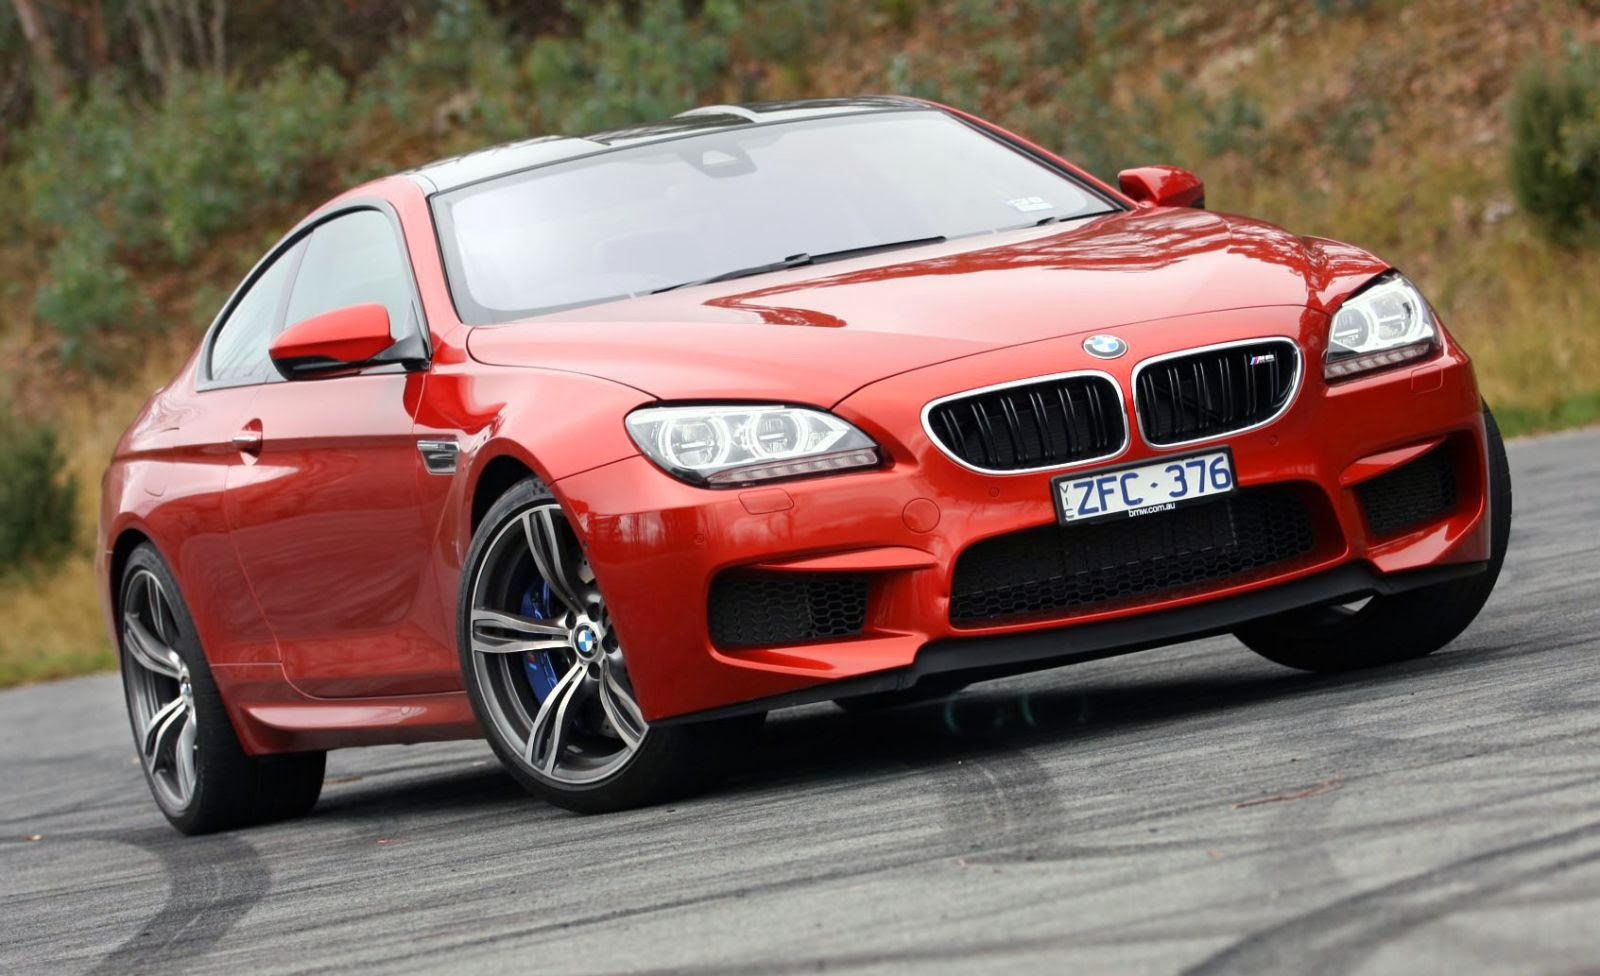 bmw m6 coupe 2014 red   hd wallpaper